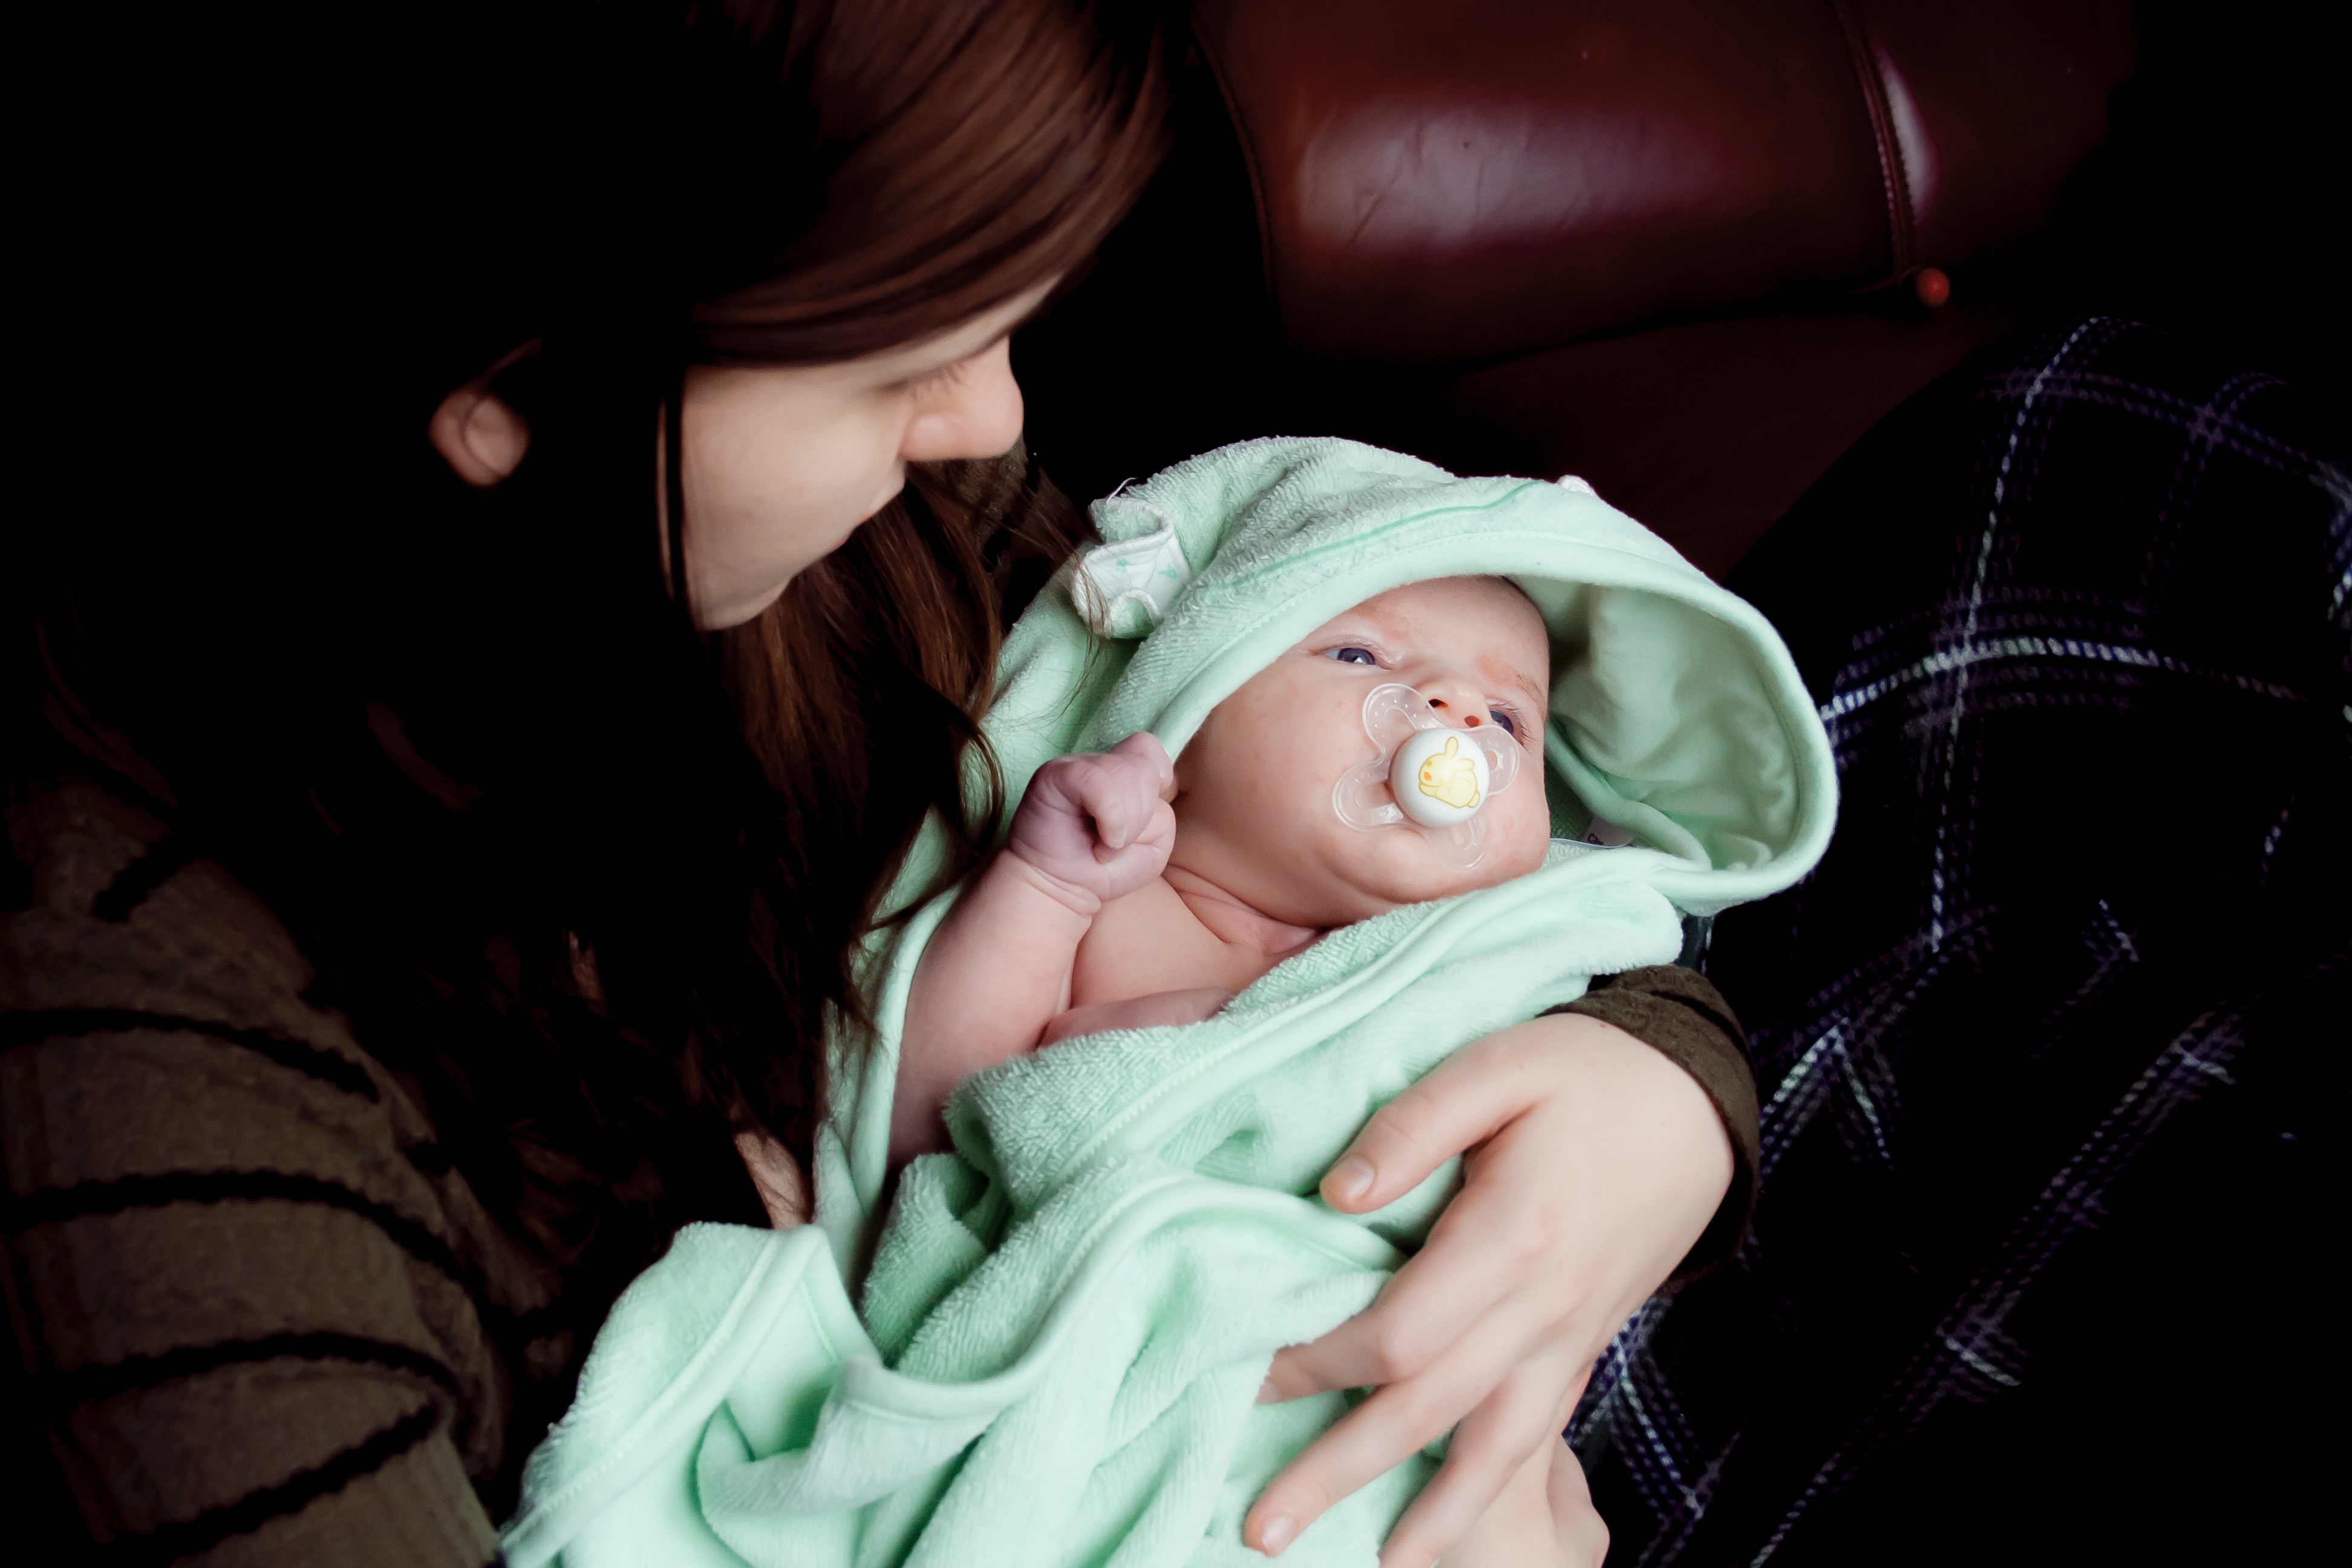 A young mother holding her baby who is wrapped in a soft mint green hooded bath towel